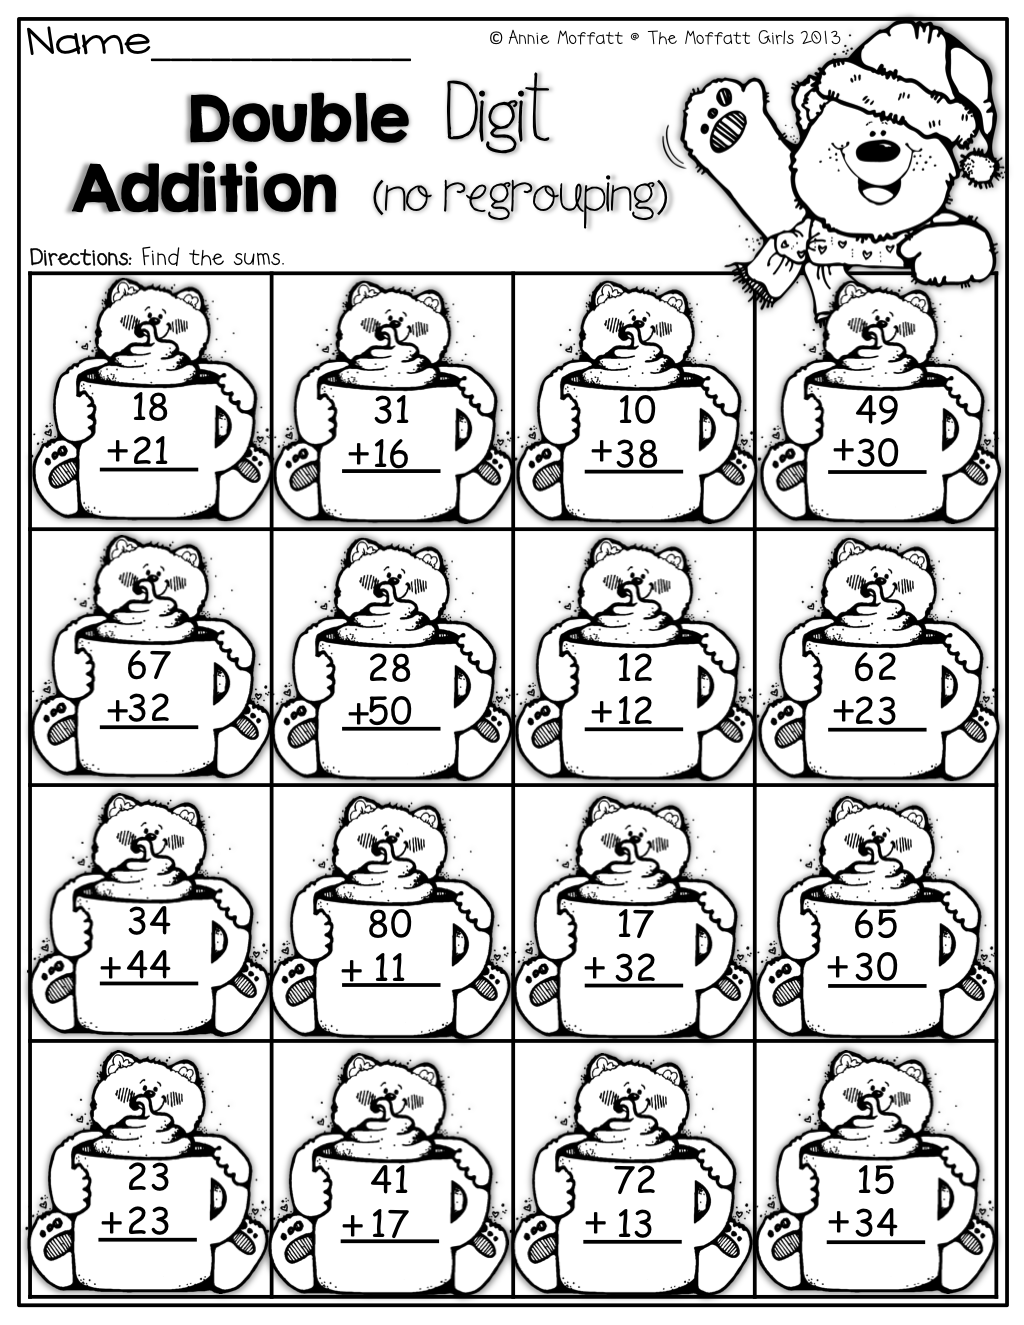 Double Digit Addition with no regrouping! | 1st Grade | Pinterest ...